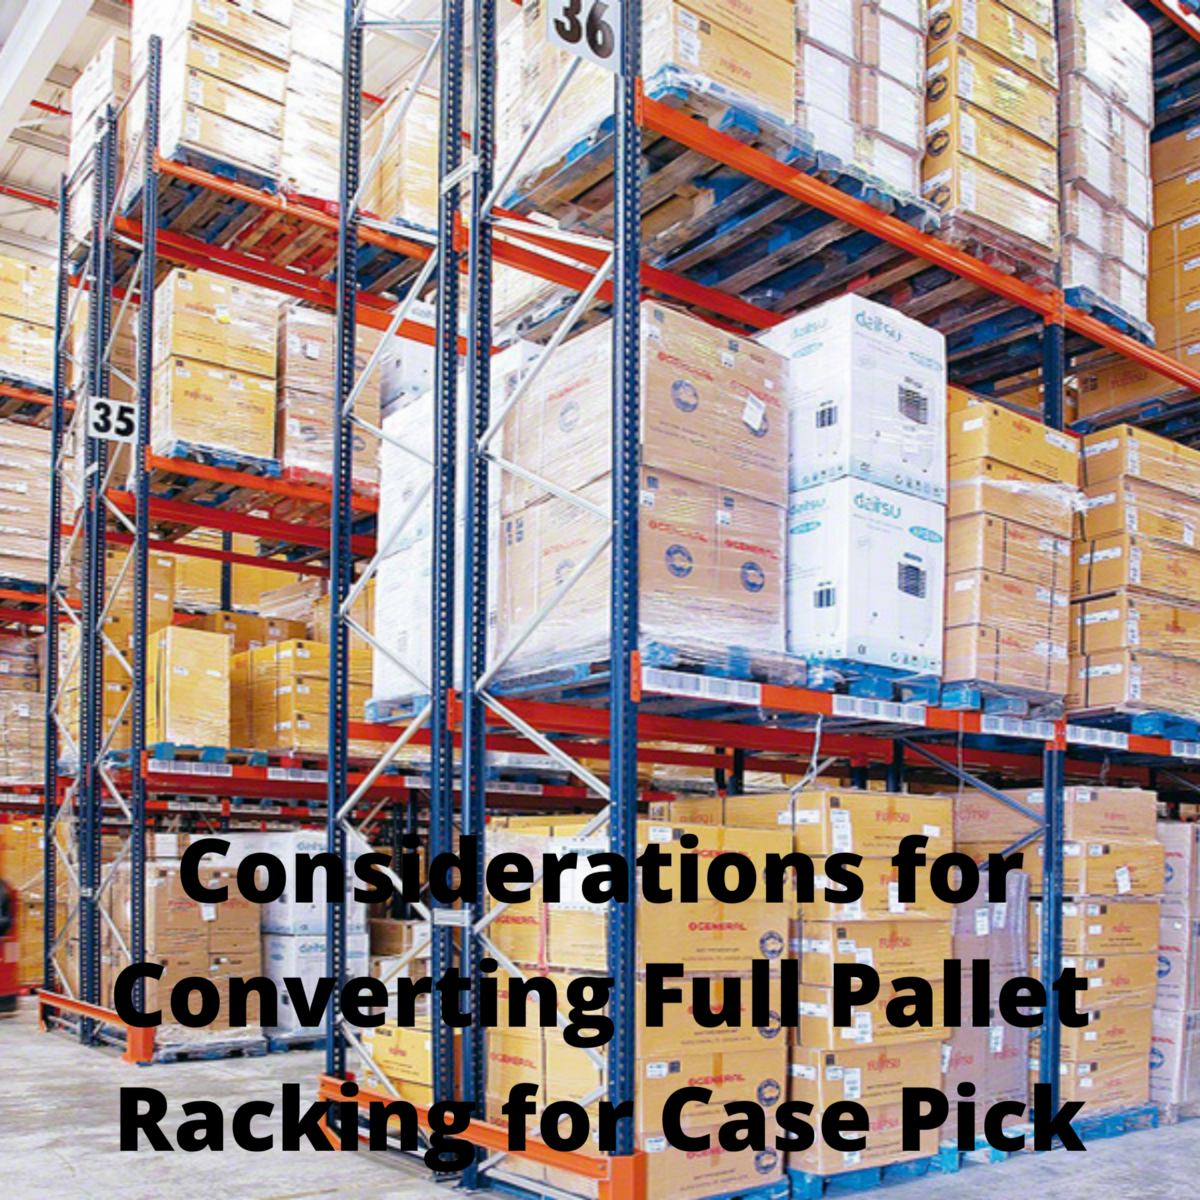 Considerations for Converting Full Pallet Racking for Case Pick